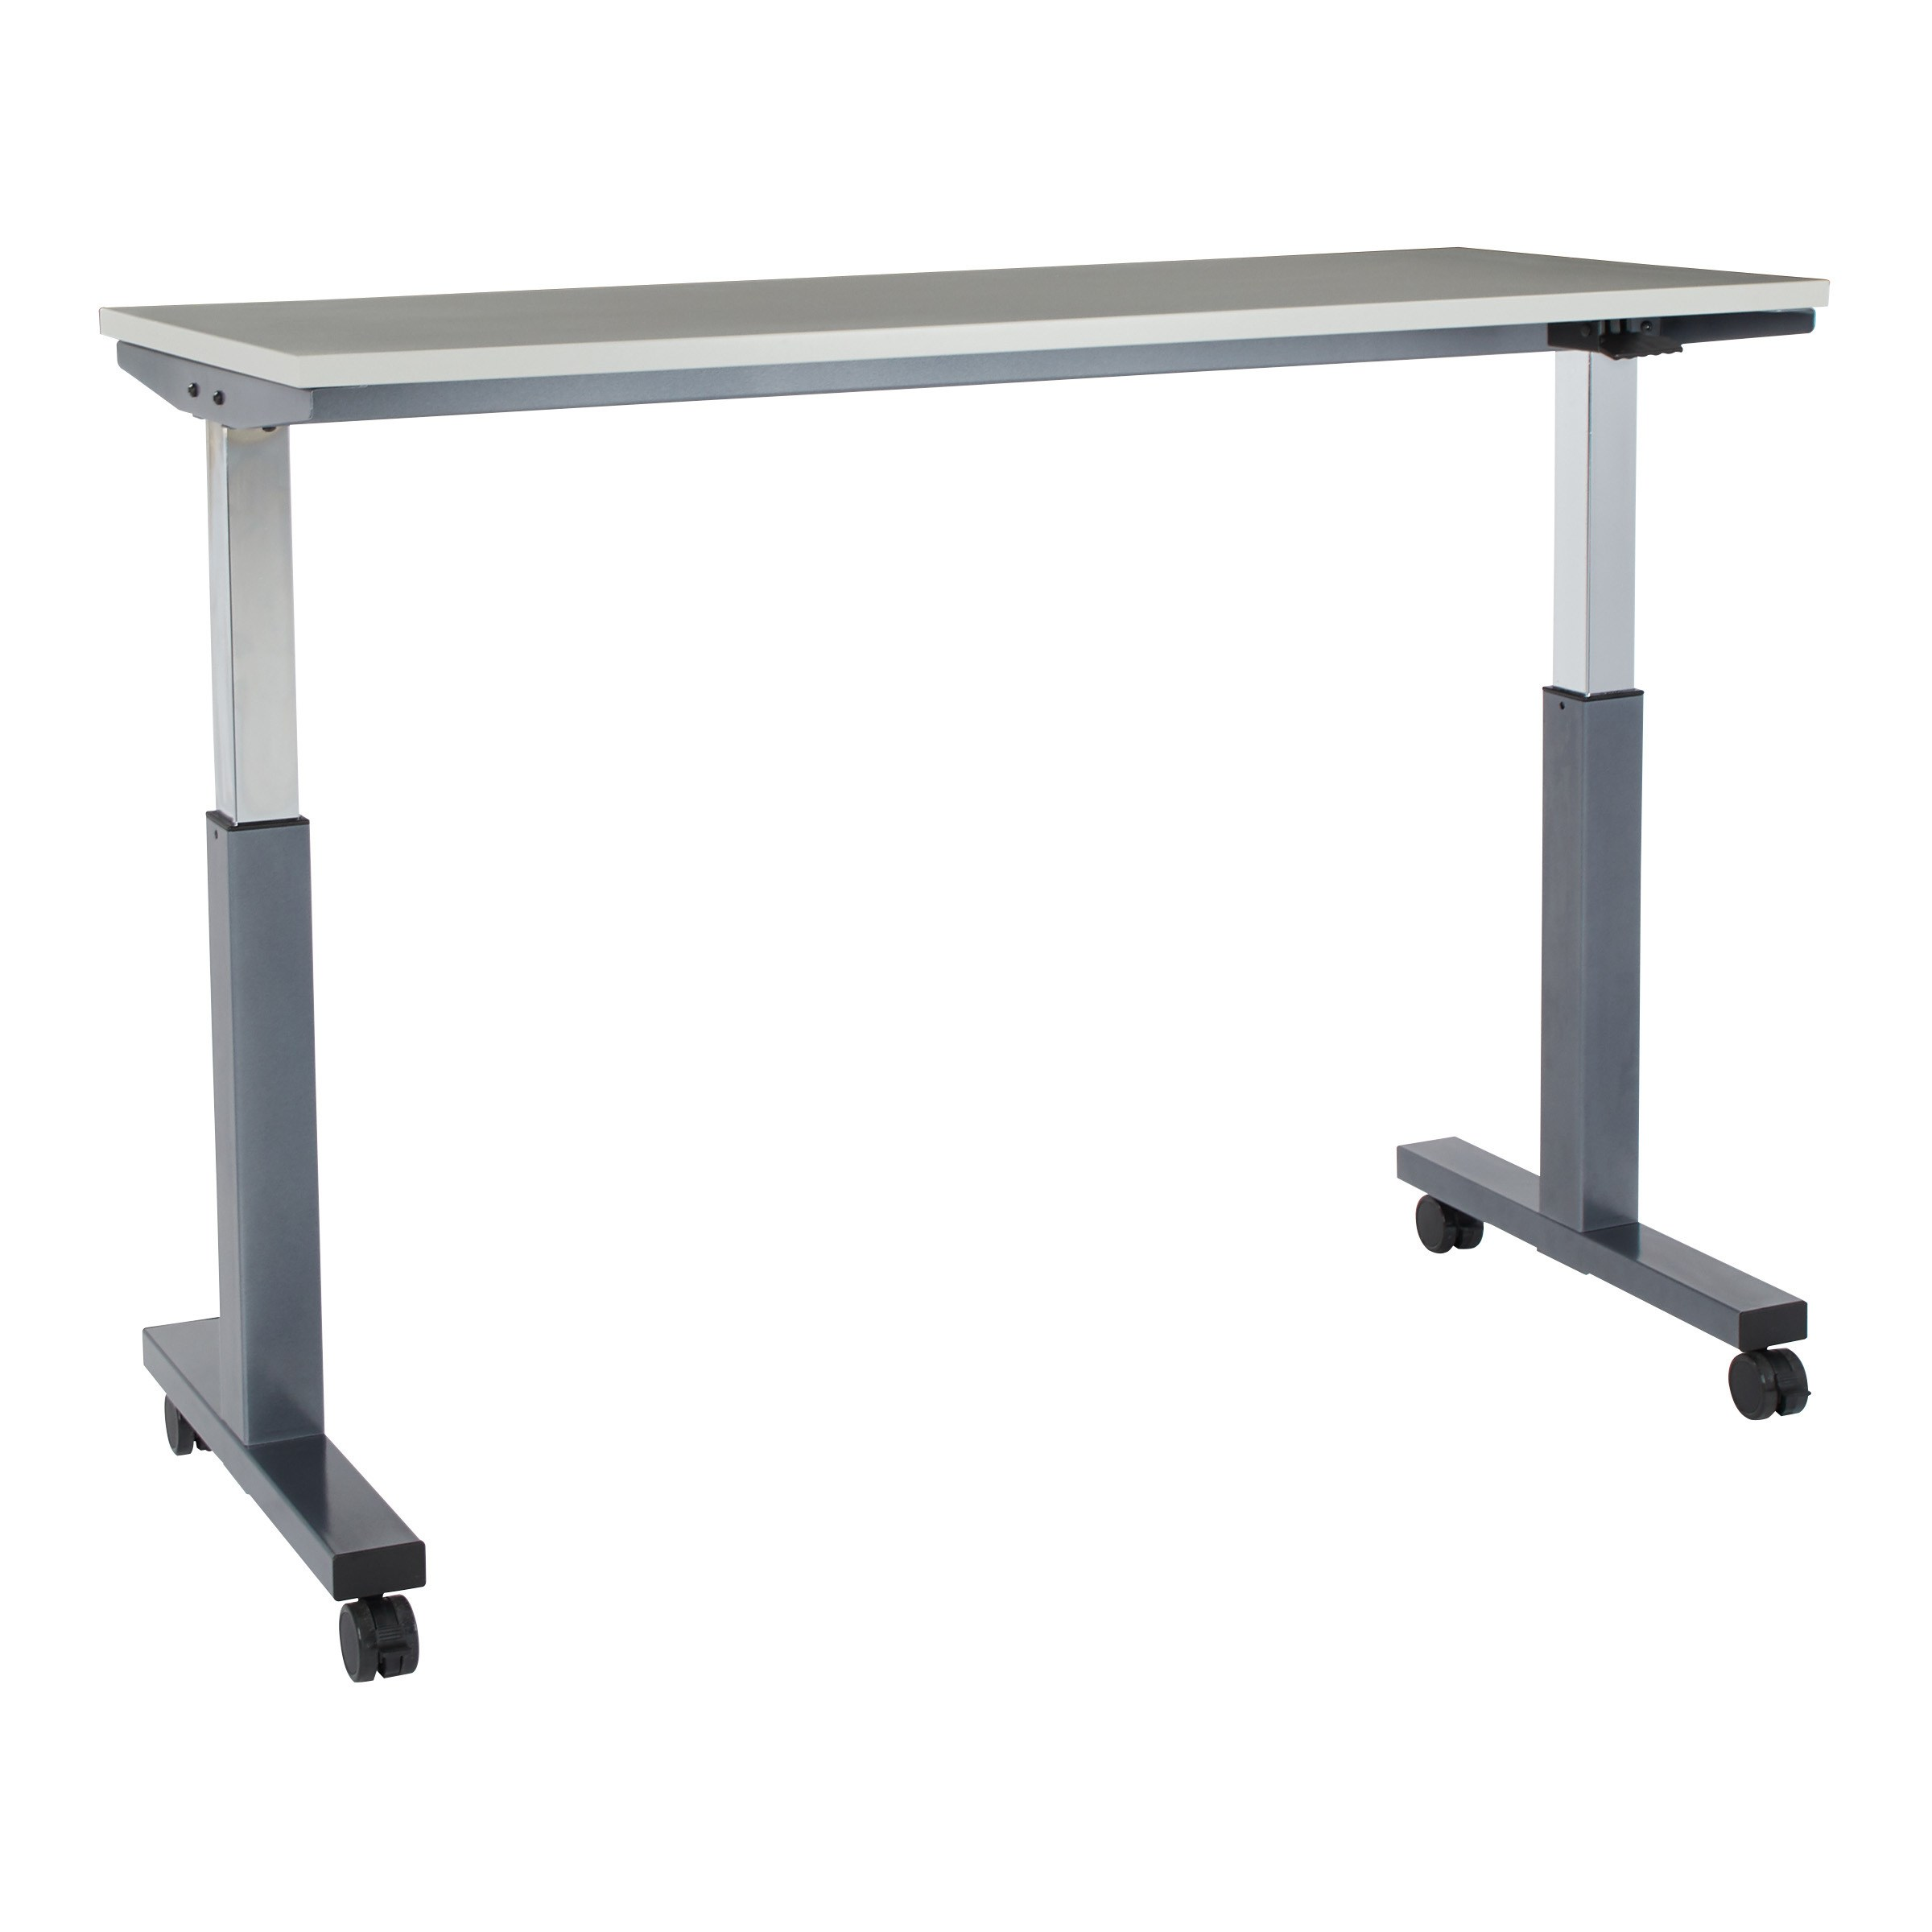 office star accent tables kmart prod table products wide pneumatic height adjustable titanium steel frame with grey small tiffany style desk lamp bunnings outdoor lounge settings